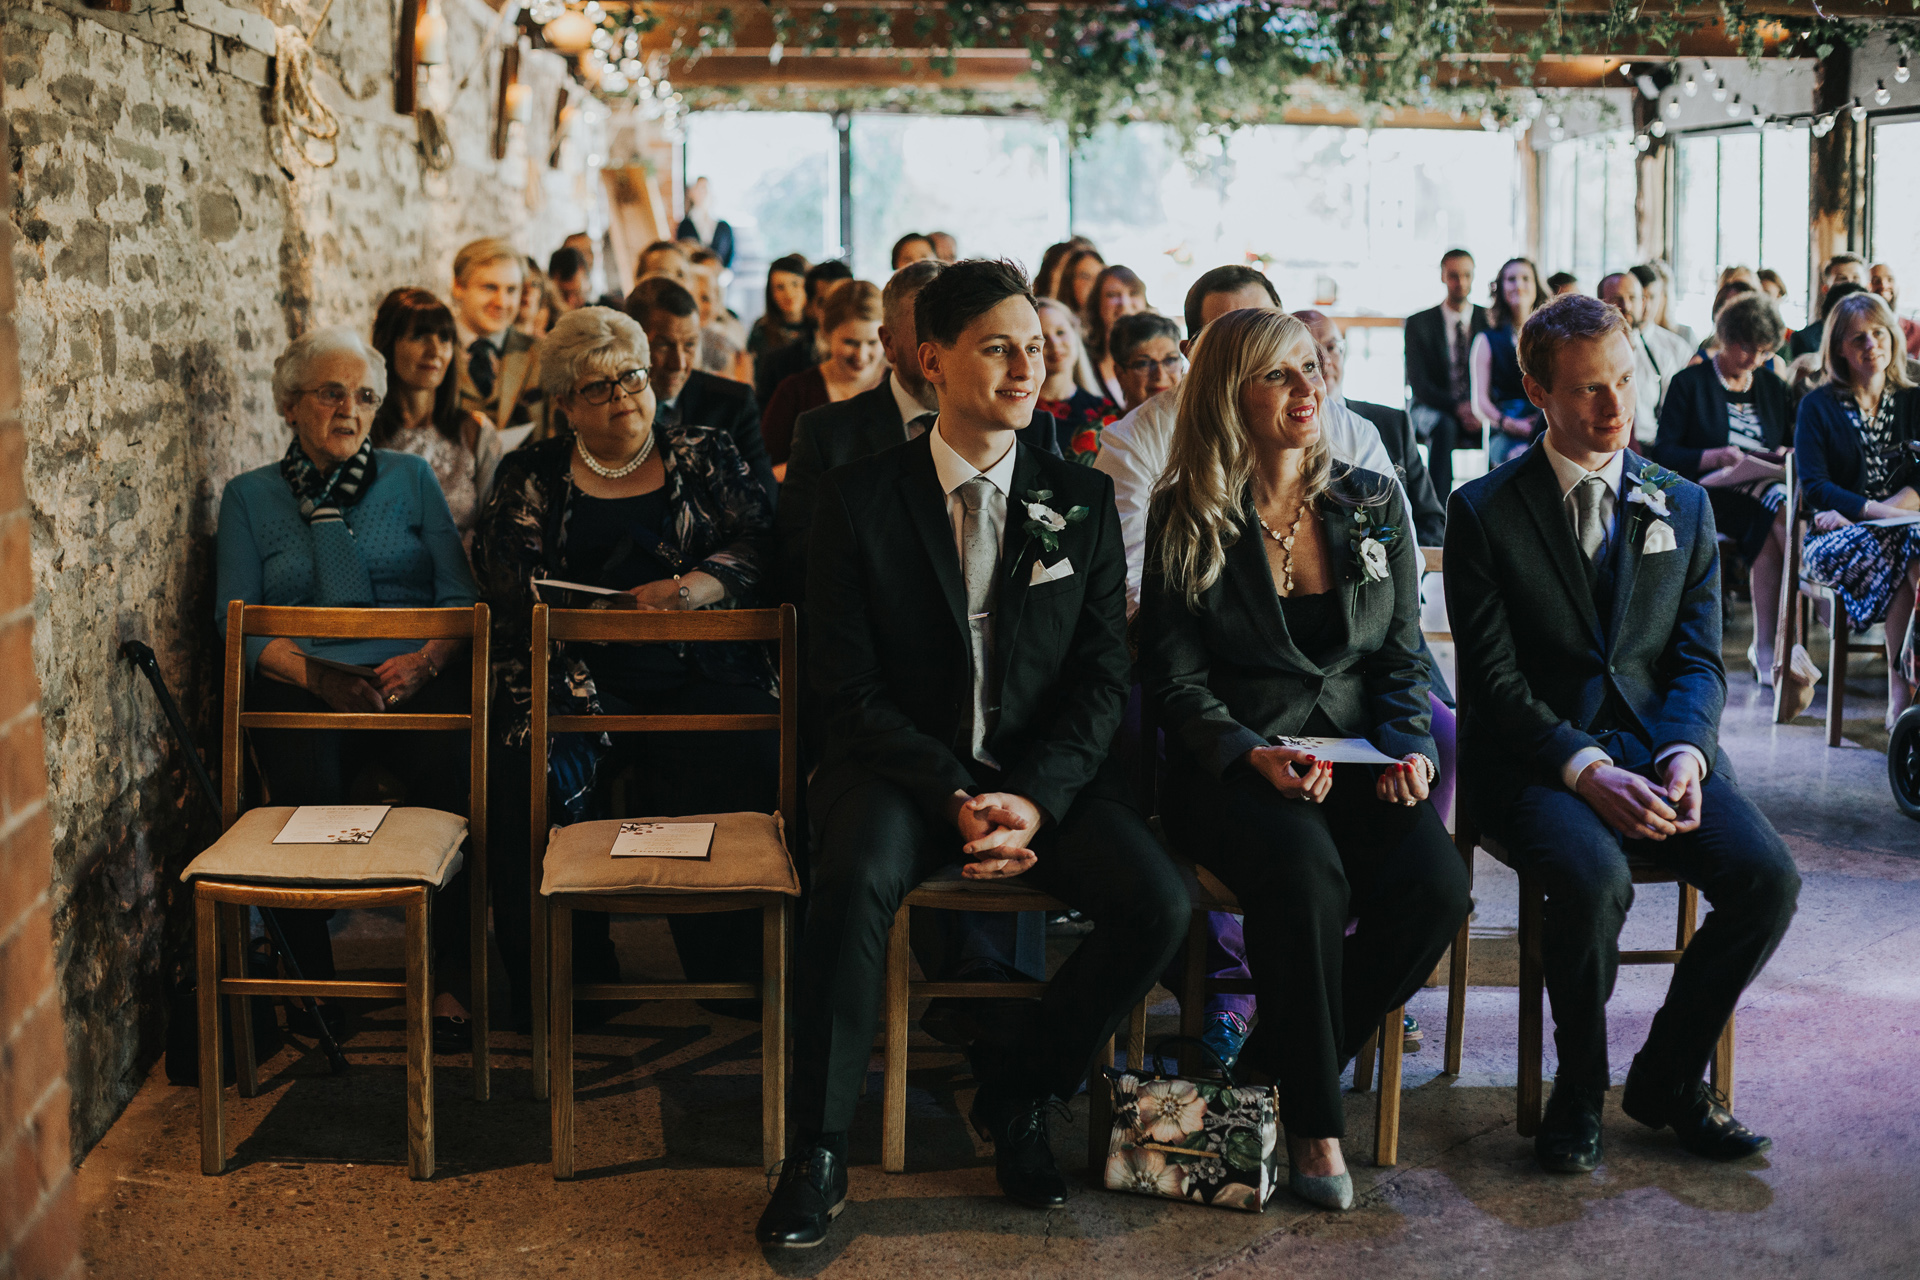 Wedding guests watch the couple saying theirs vows.